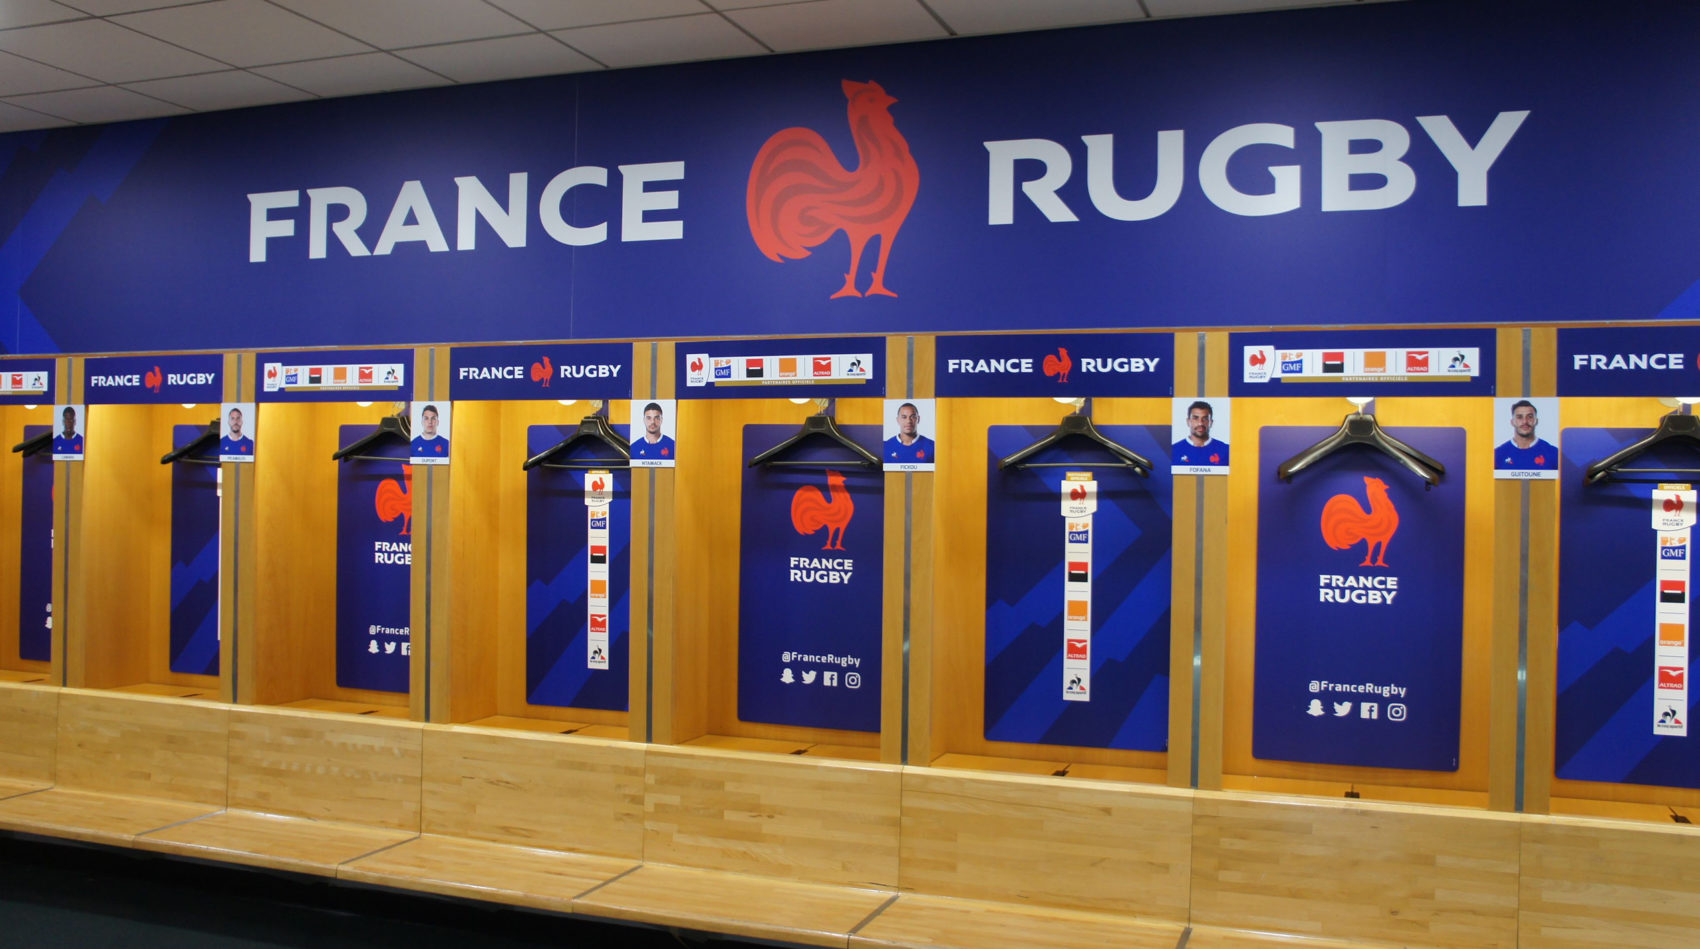 Projet_project_leroy_tremblot_FFR_federation_francaise_rugby_french_nouvelle_identite_new_identity_habillage_vestiaire